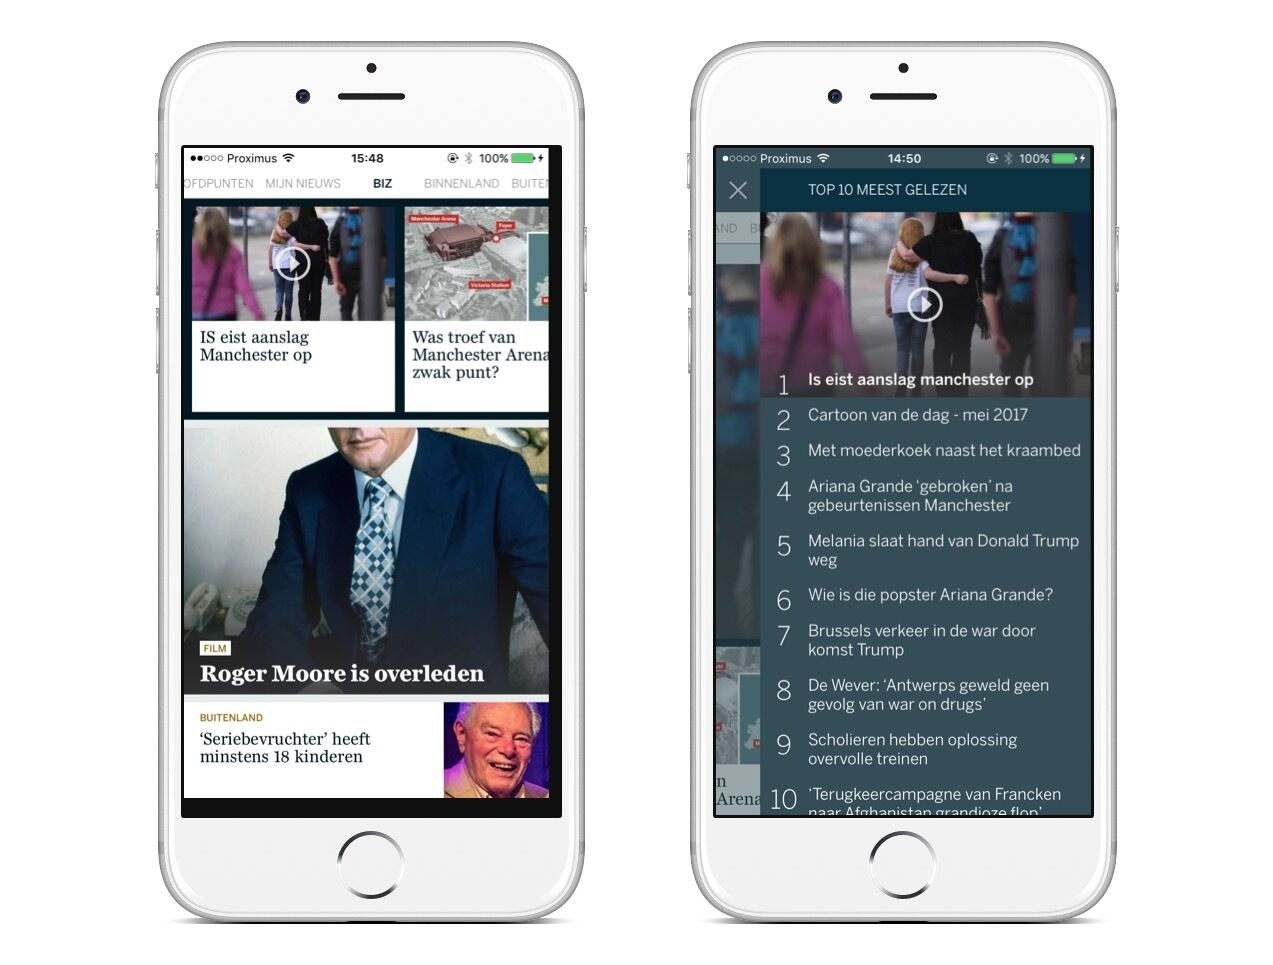 Standaard mobile application